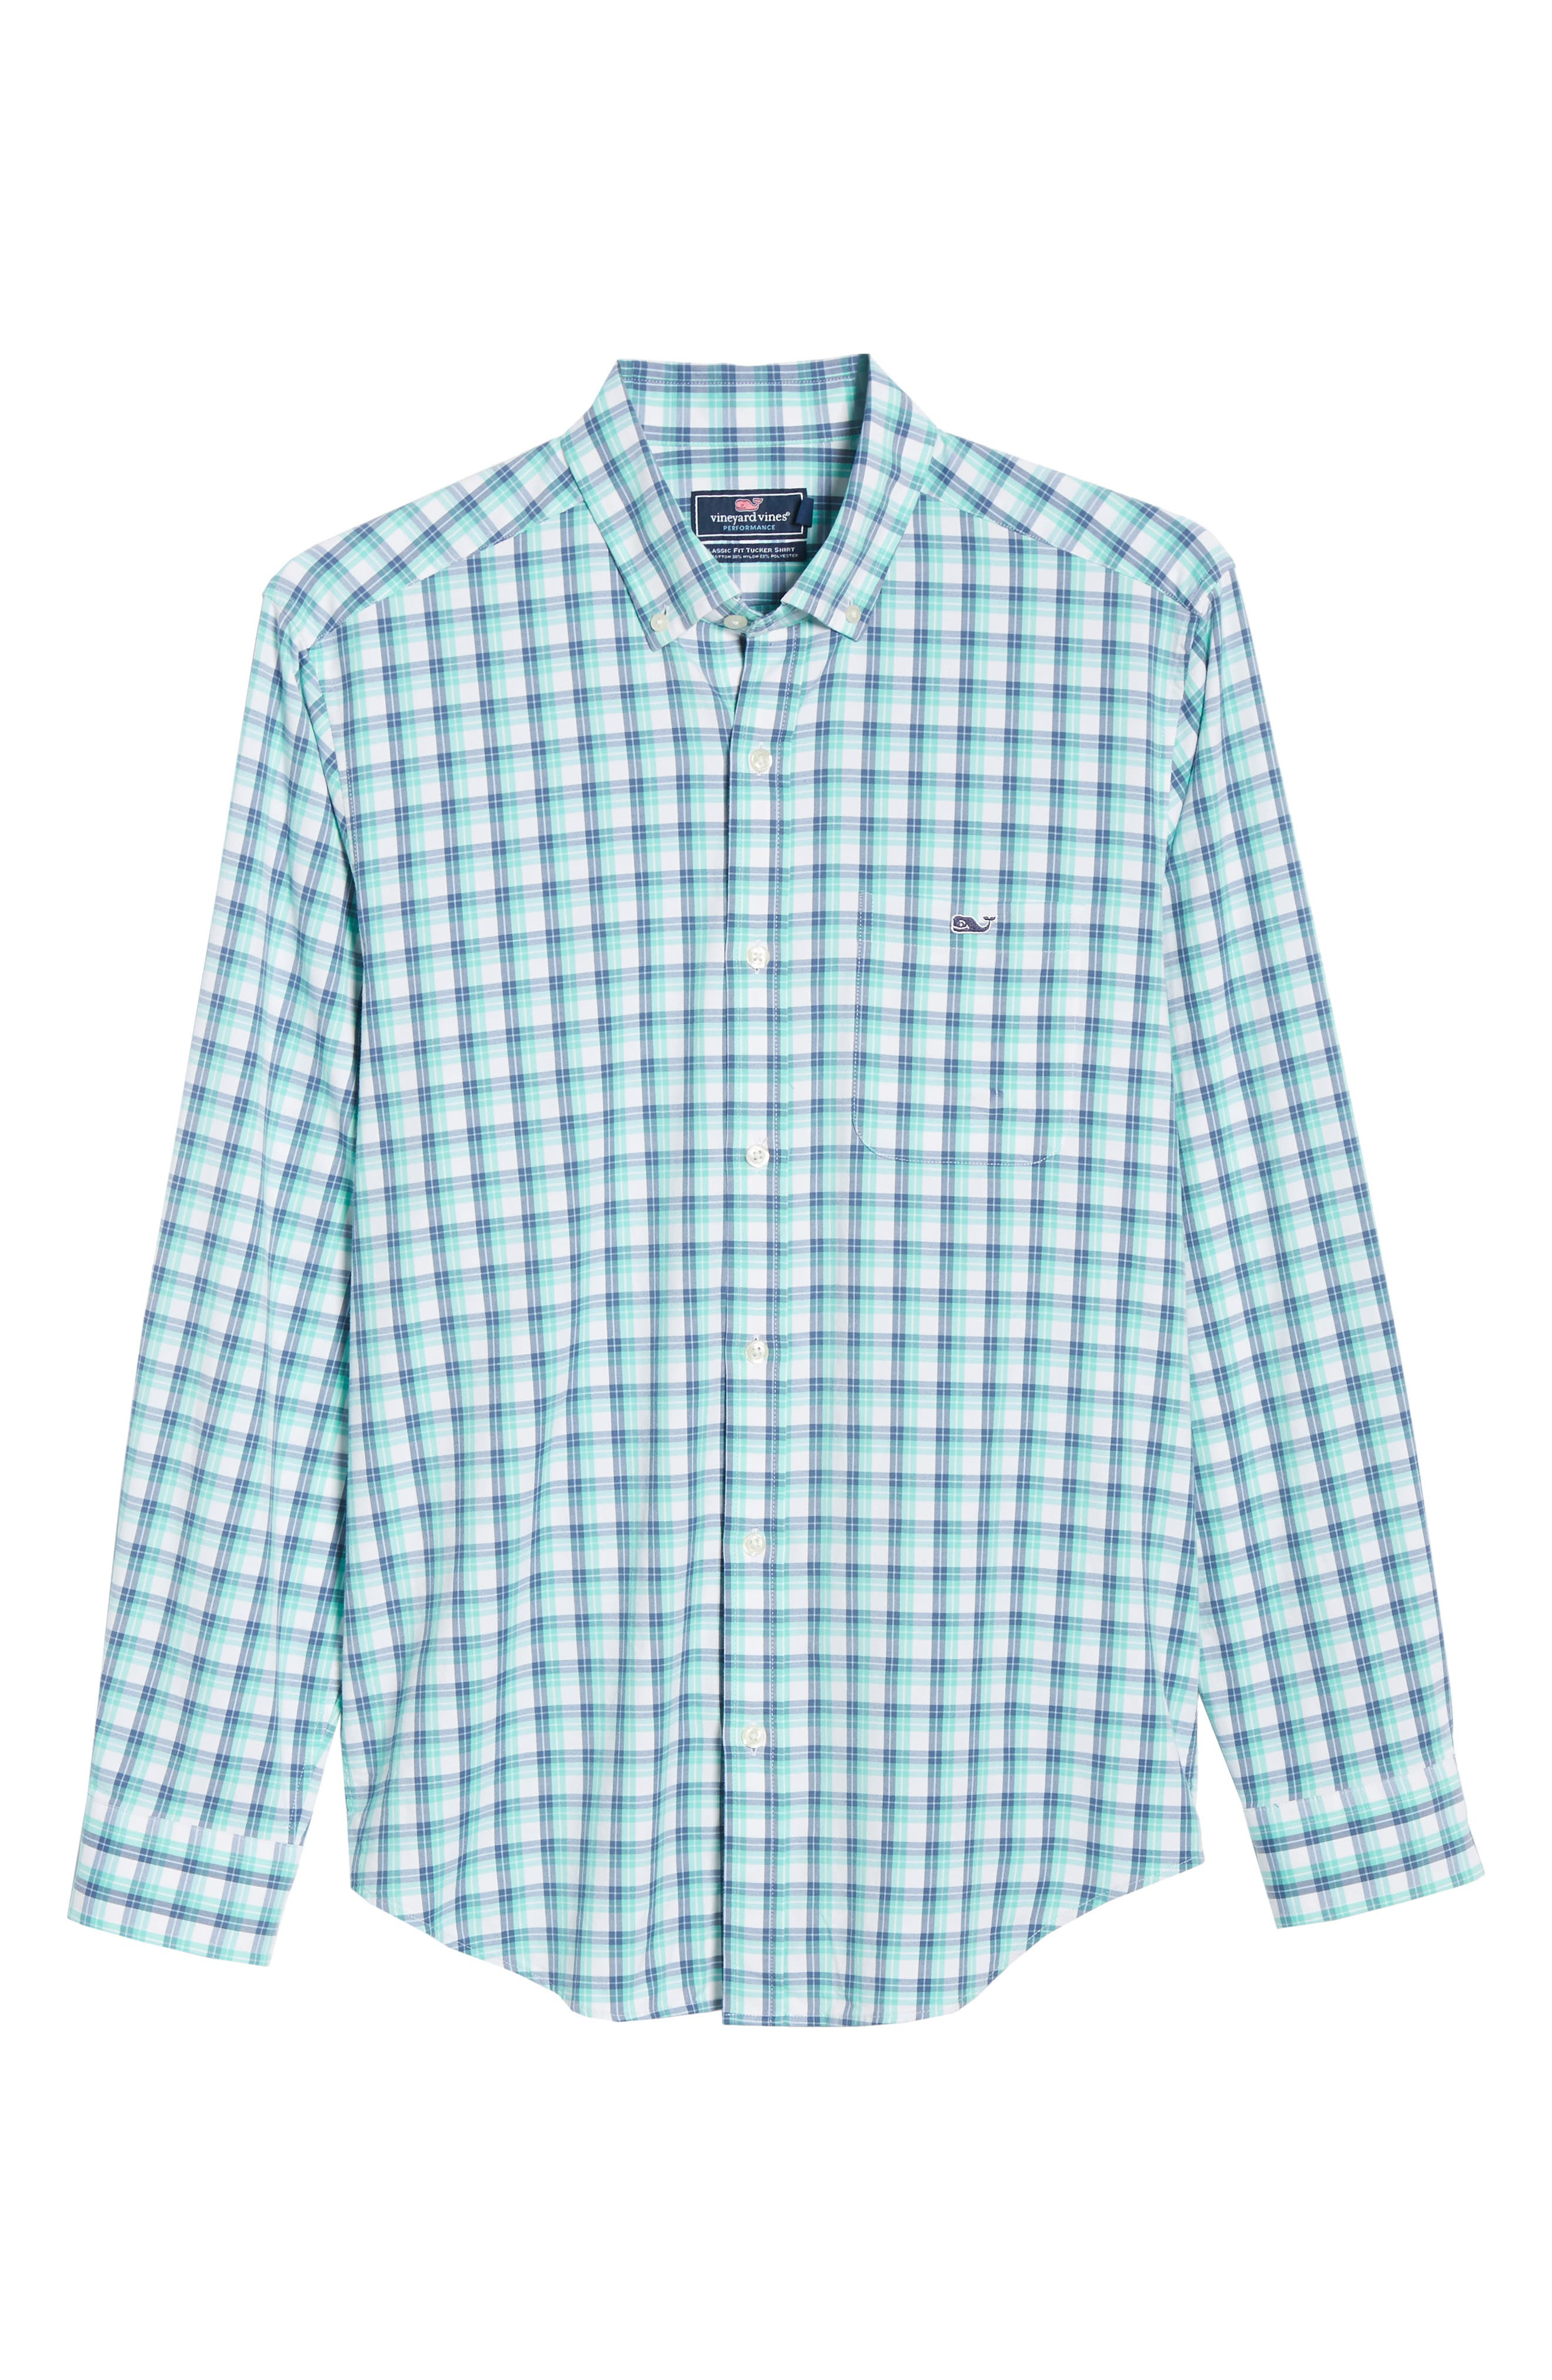 VINEYARD VINES,                             South Street Tucker Slim Fit Sport Shirt,                             Alternate thumbnail 5, color,                             CAPRI BLUE